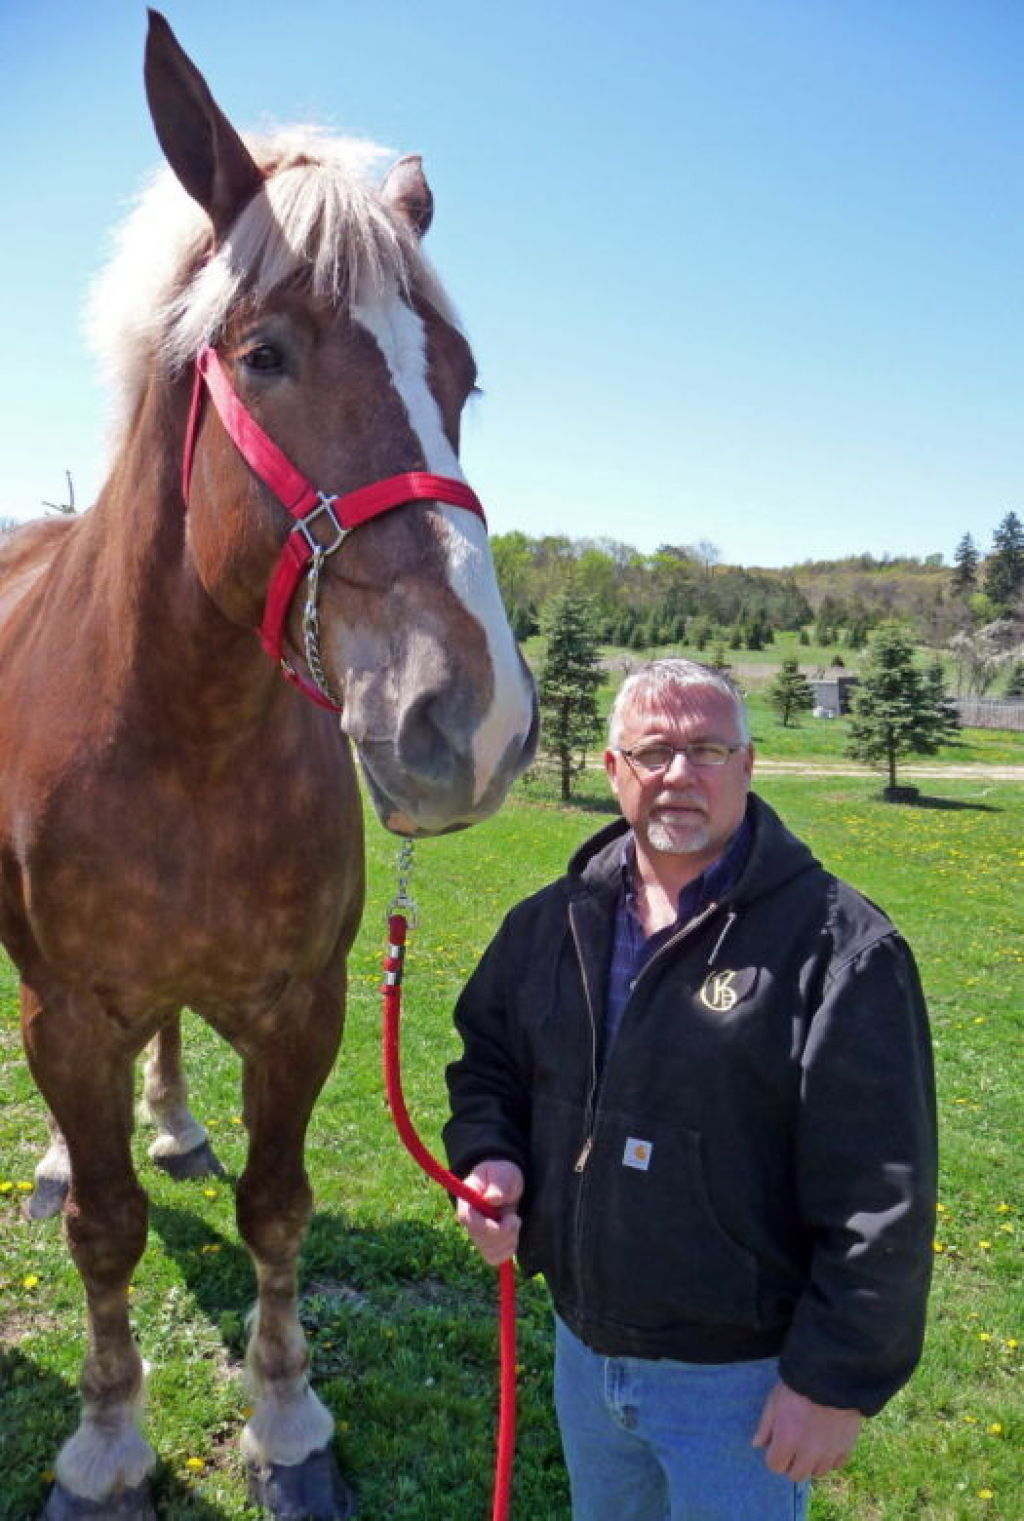 World S Tallest Horse Towering Over Midwest Horse Fair Local News Madison Com